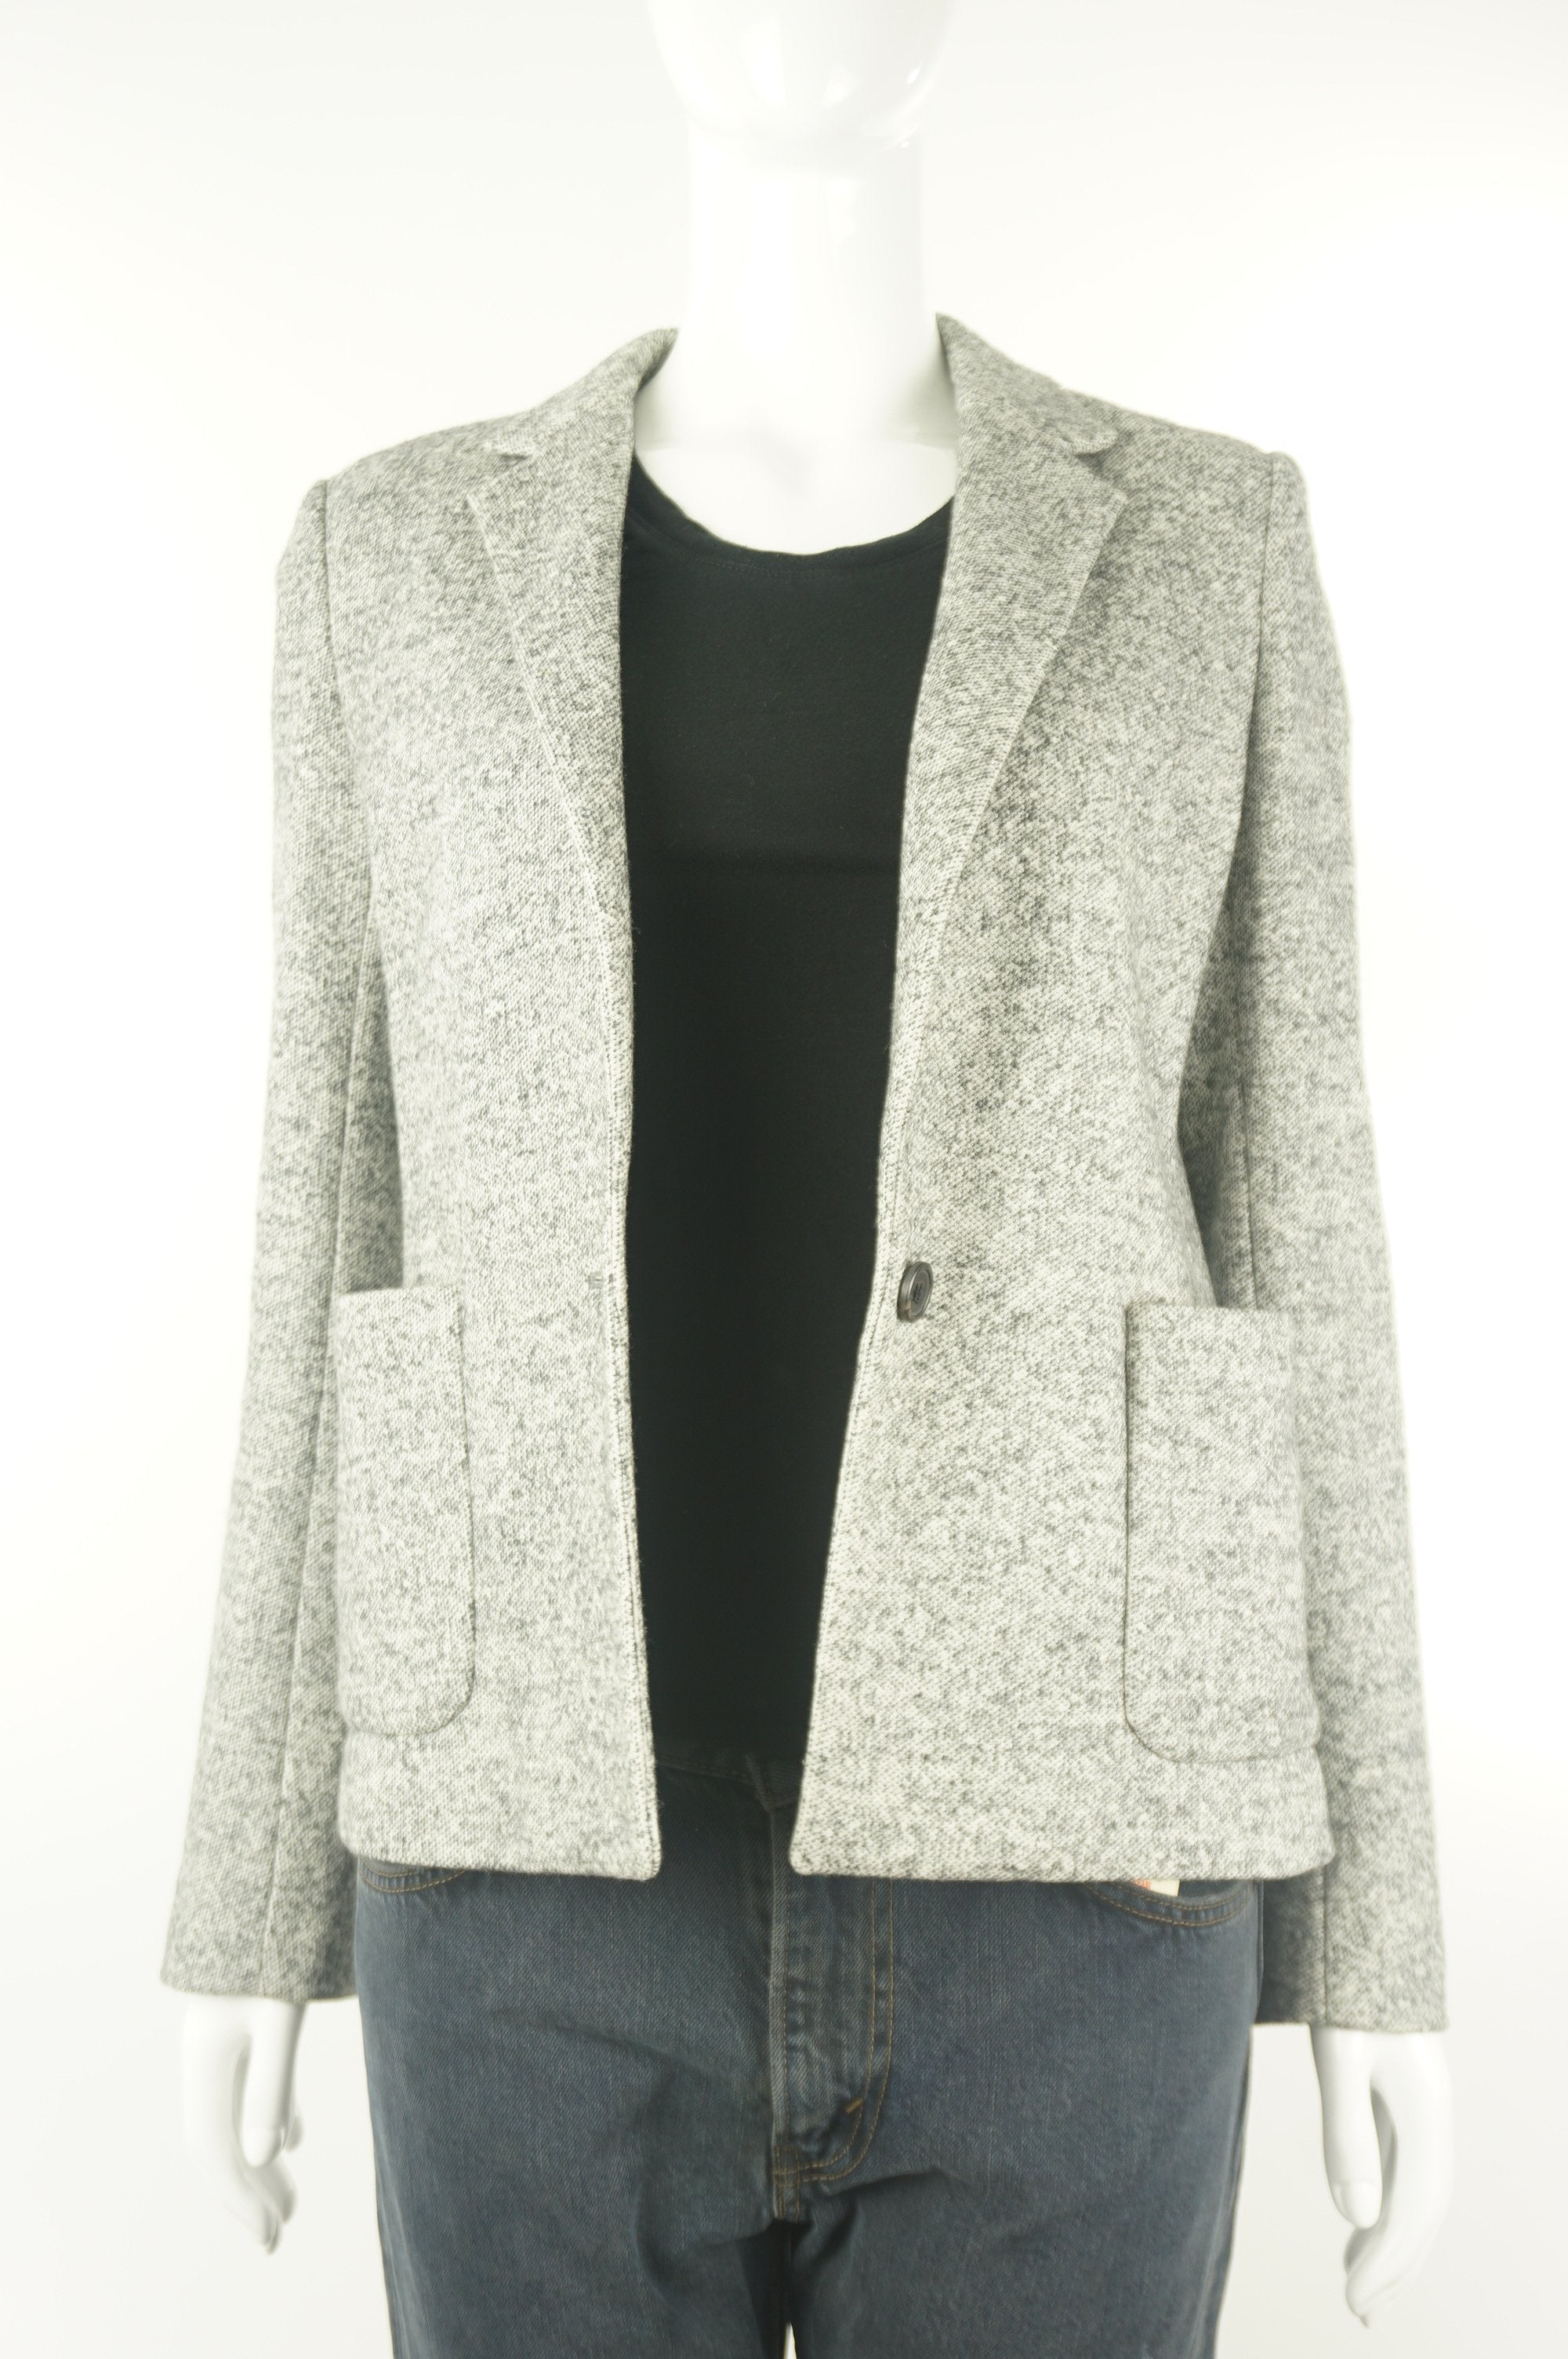 Wilfred Wool Blazer, Blazer for the office or wherever you want to impress:), Grey, 55% cotton, 45% wool., women's Jackets & Coats, women's Grey Jackets & Coats, Wilfred women's Jackets & Coats, Wilfred women's blazer, women's wool blazer, women's professional jacket, women's business blazer, women's business one-buttoned suit jacket, women's business one-buttoned vest jacket